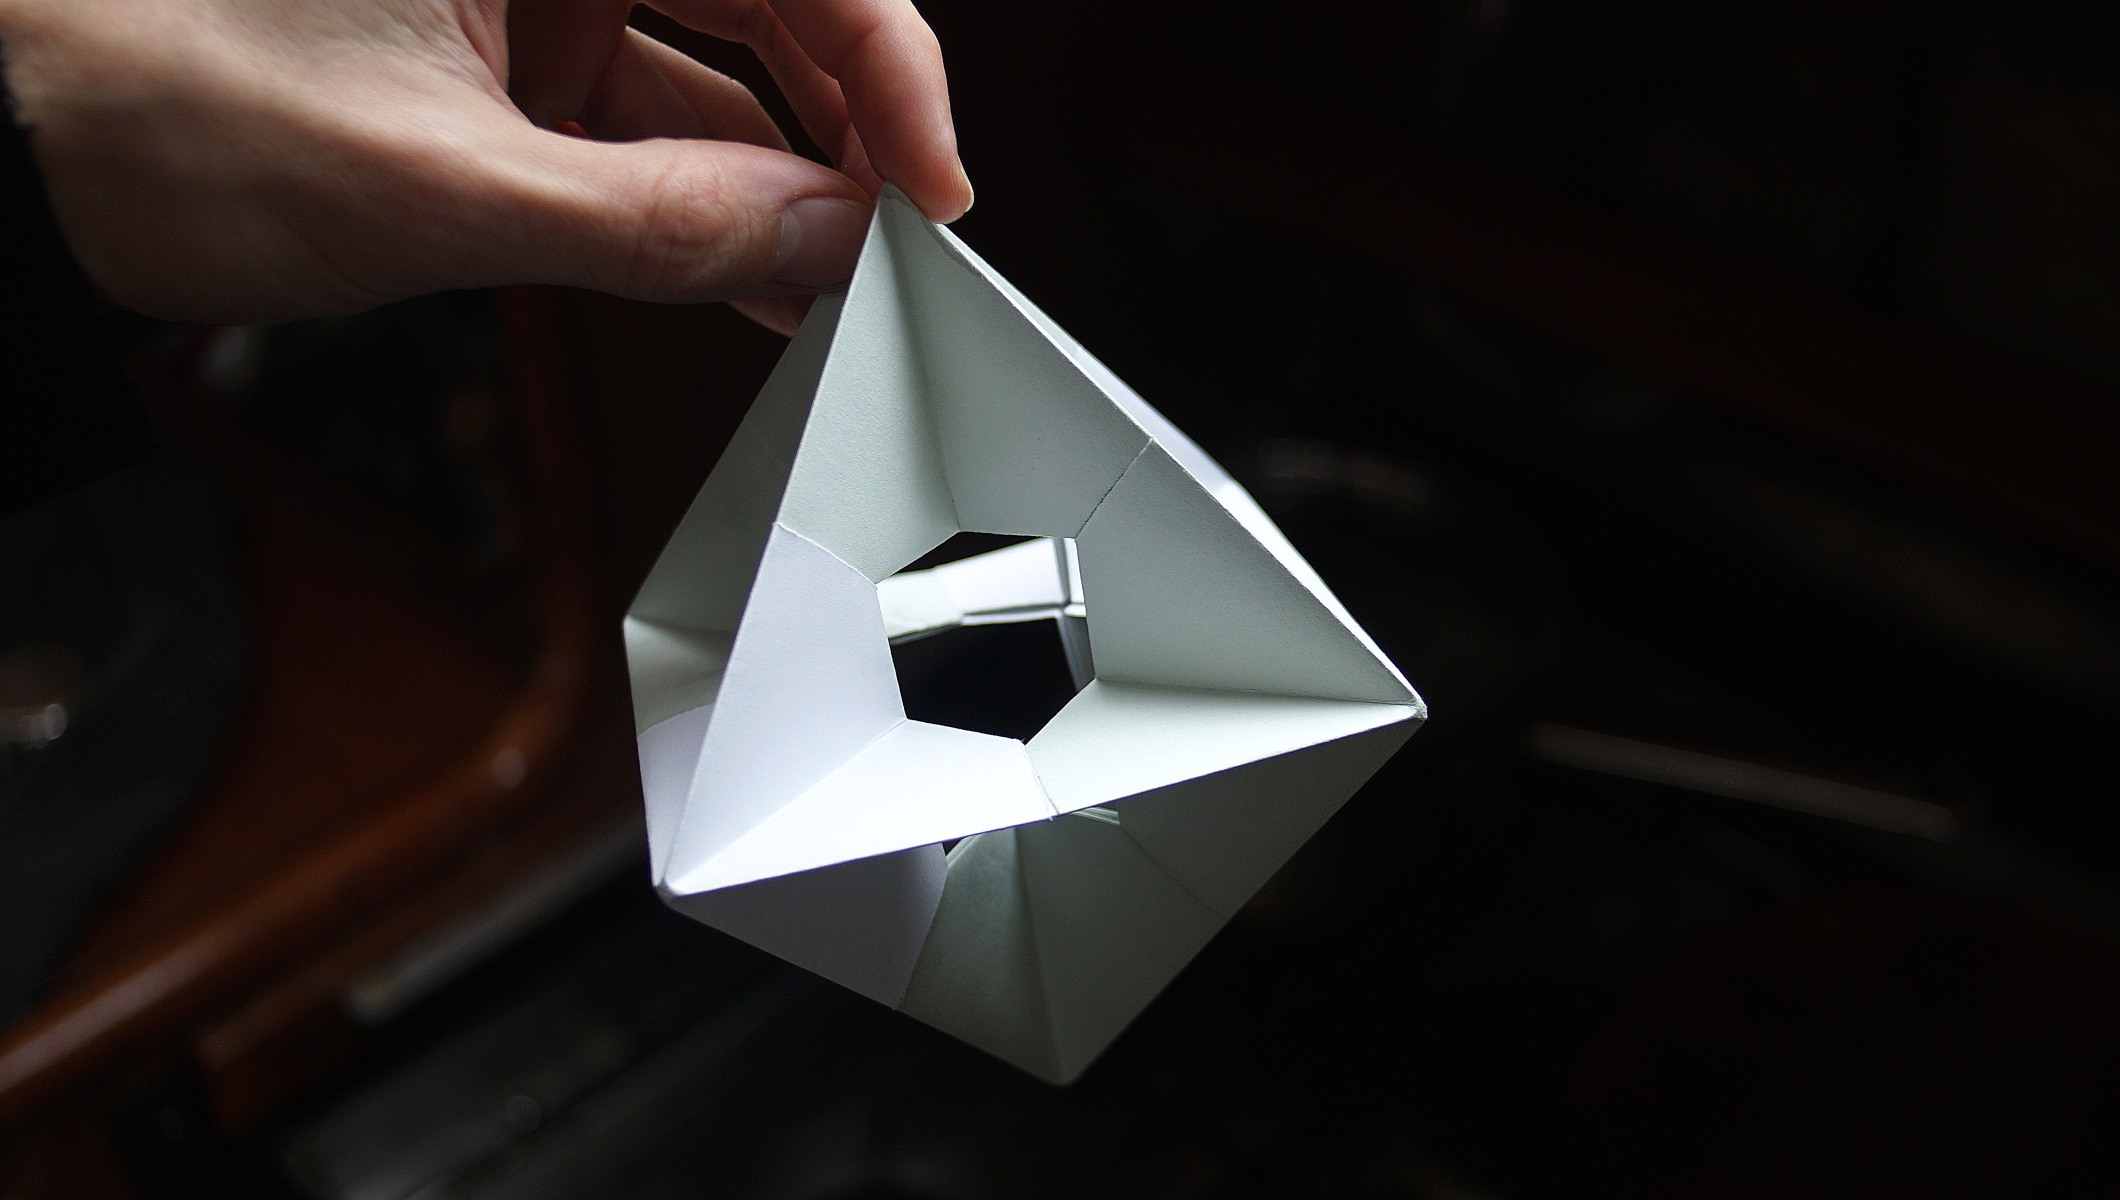 Origami is the art of paperfolding. picture